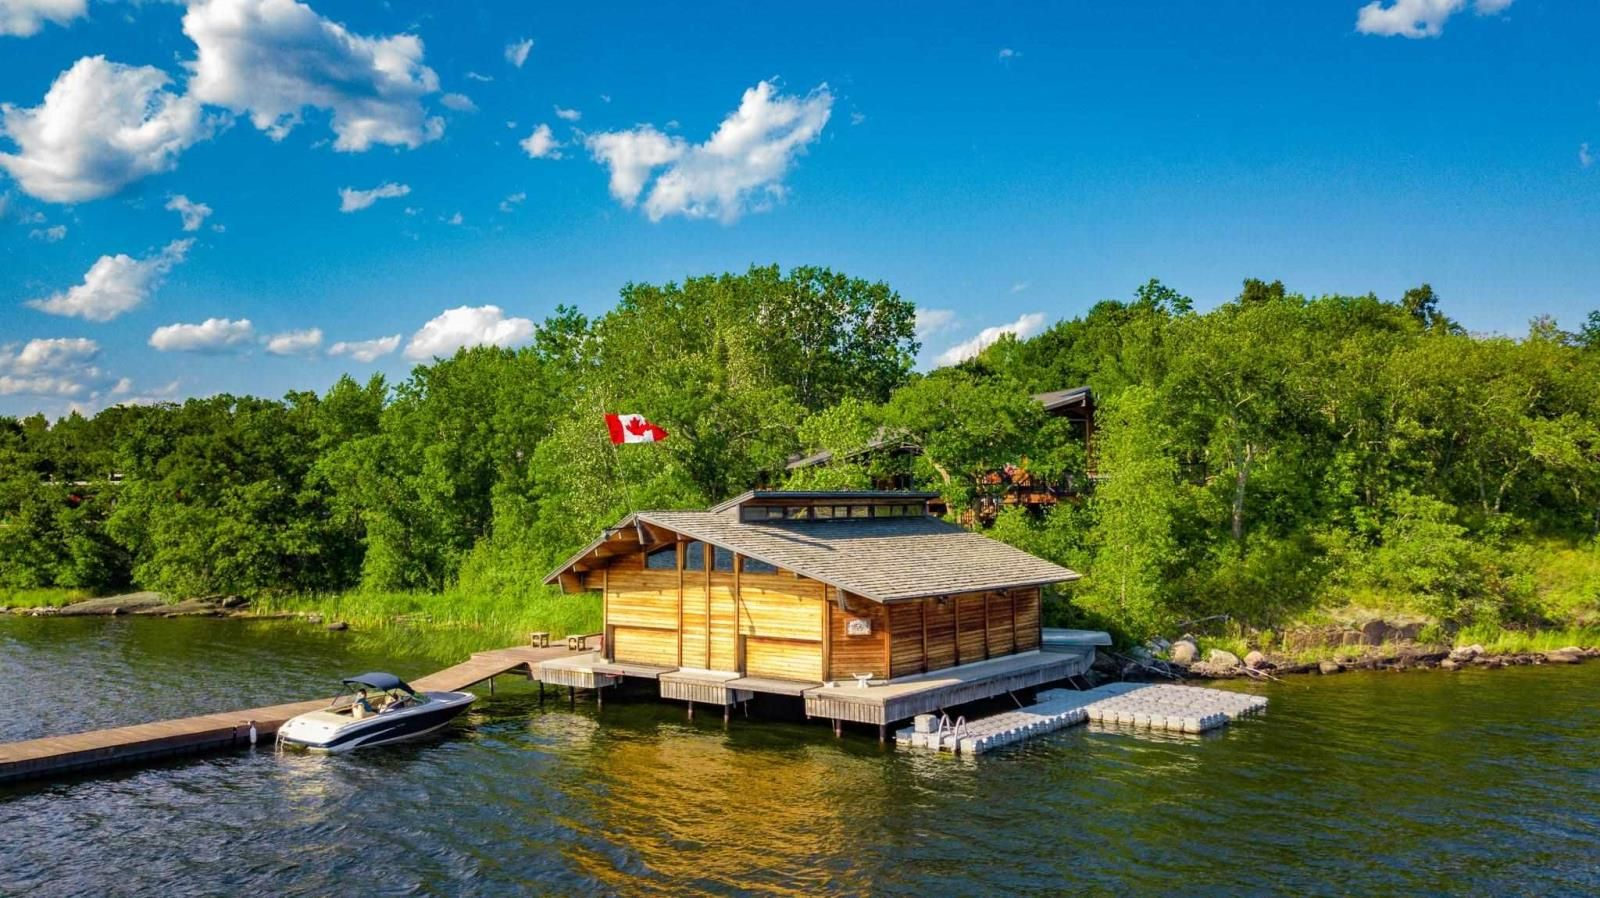 Main Photo: 18 Rush Bay road in SW of Kenora: House for sale : MLS®# TB212718